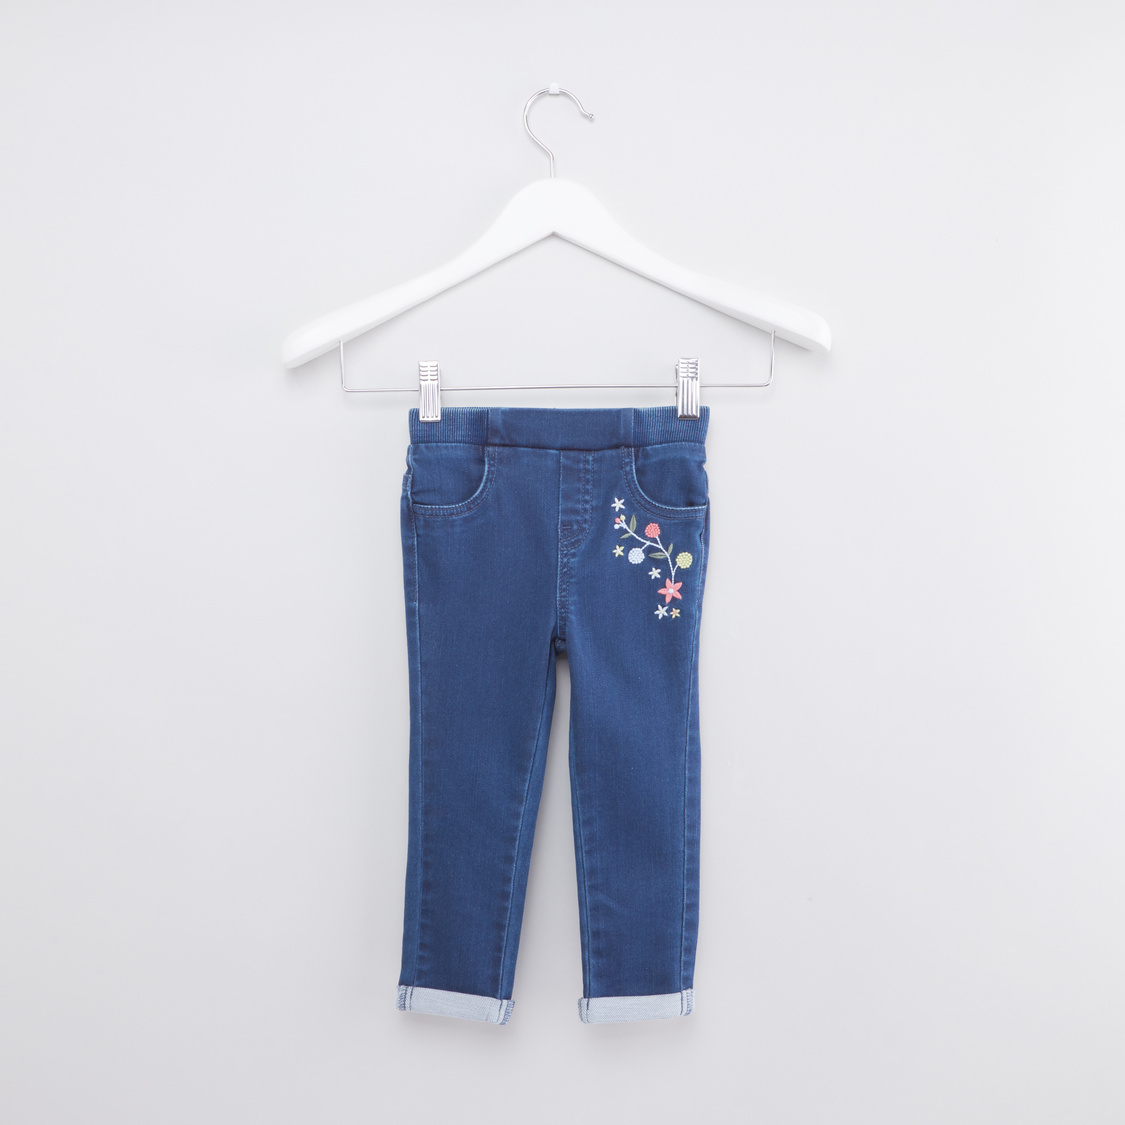 Embroidered Full Length Jeans with Pocket Detail